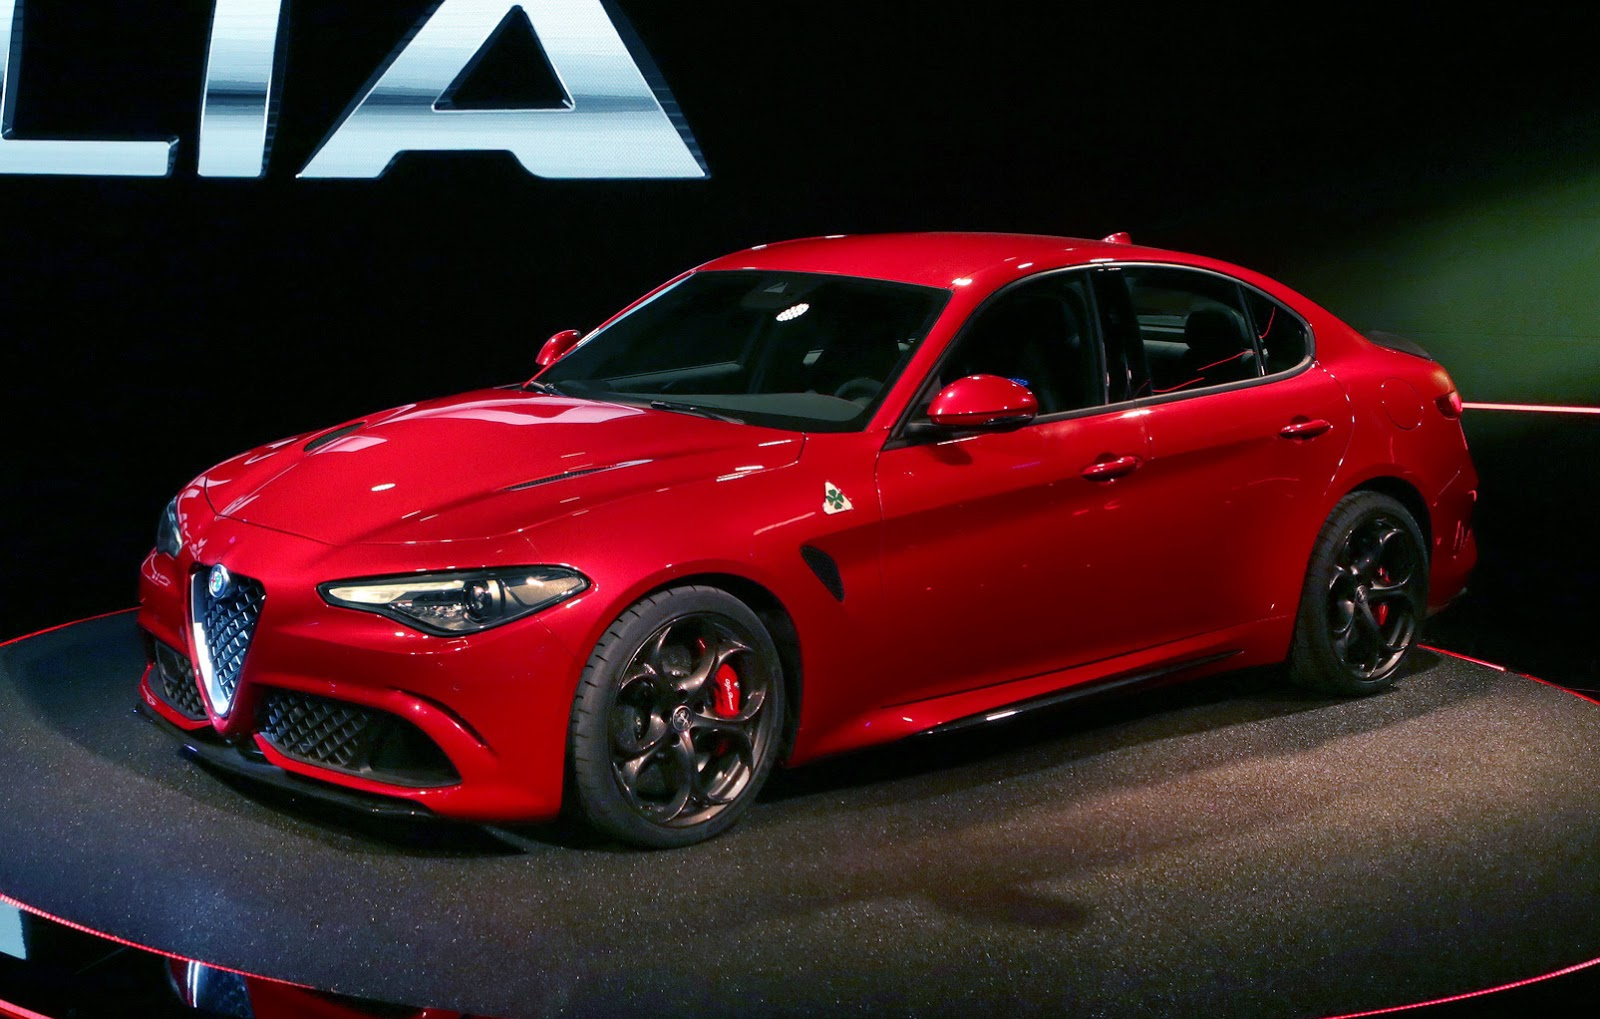 alfa romeo giulia qv with 510ps official details and high res images. Black Bedroom Furniture Sets. Home Design Ideas